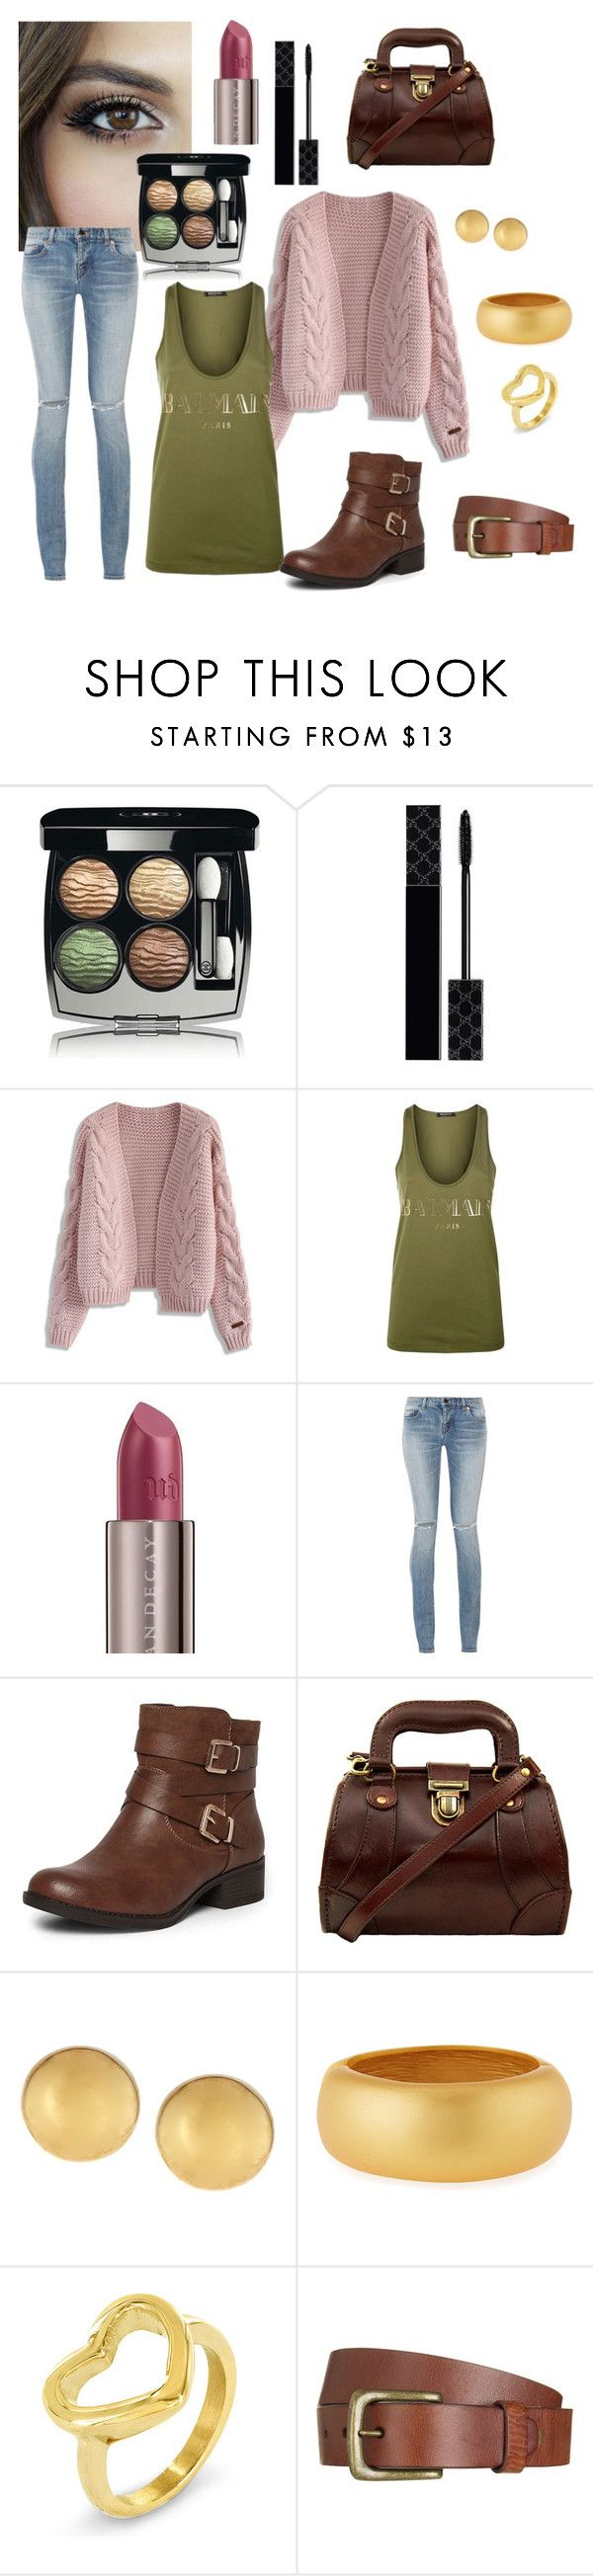 """""""For brown eyes"""" by martina-b33 ❤ liked on Polyvore featuring Chanel, Gucci, Chicwish, Balmain, Urban Decay, Yves Saint Laurent, Dorothy Perkins, Mémoire, Kenneth Jay Lane and West Coast Jewelry"""